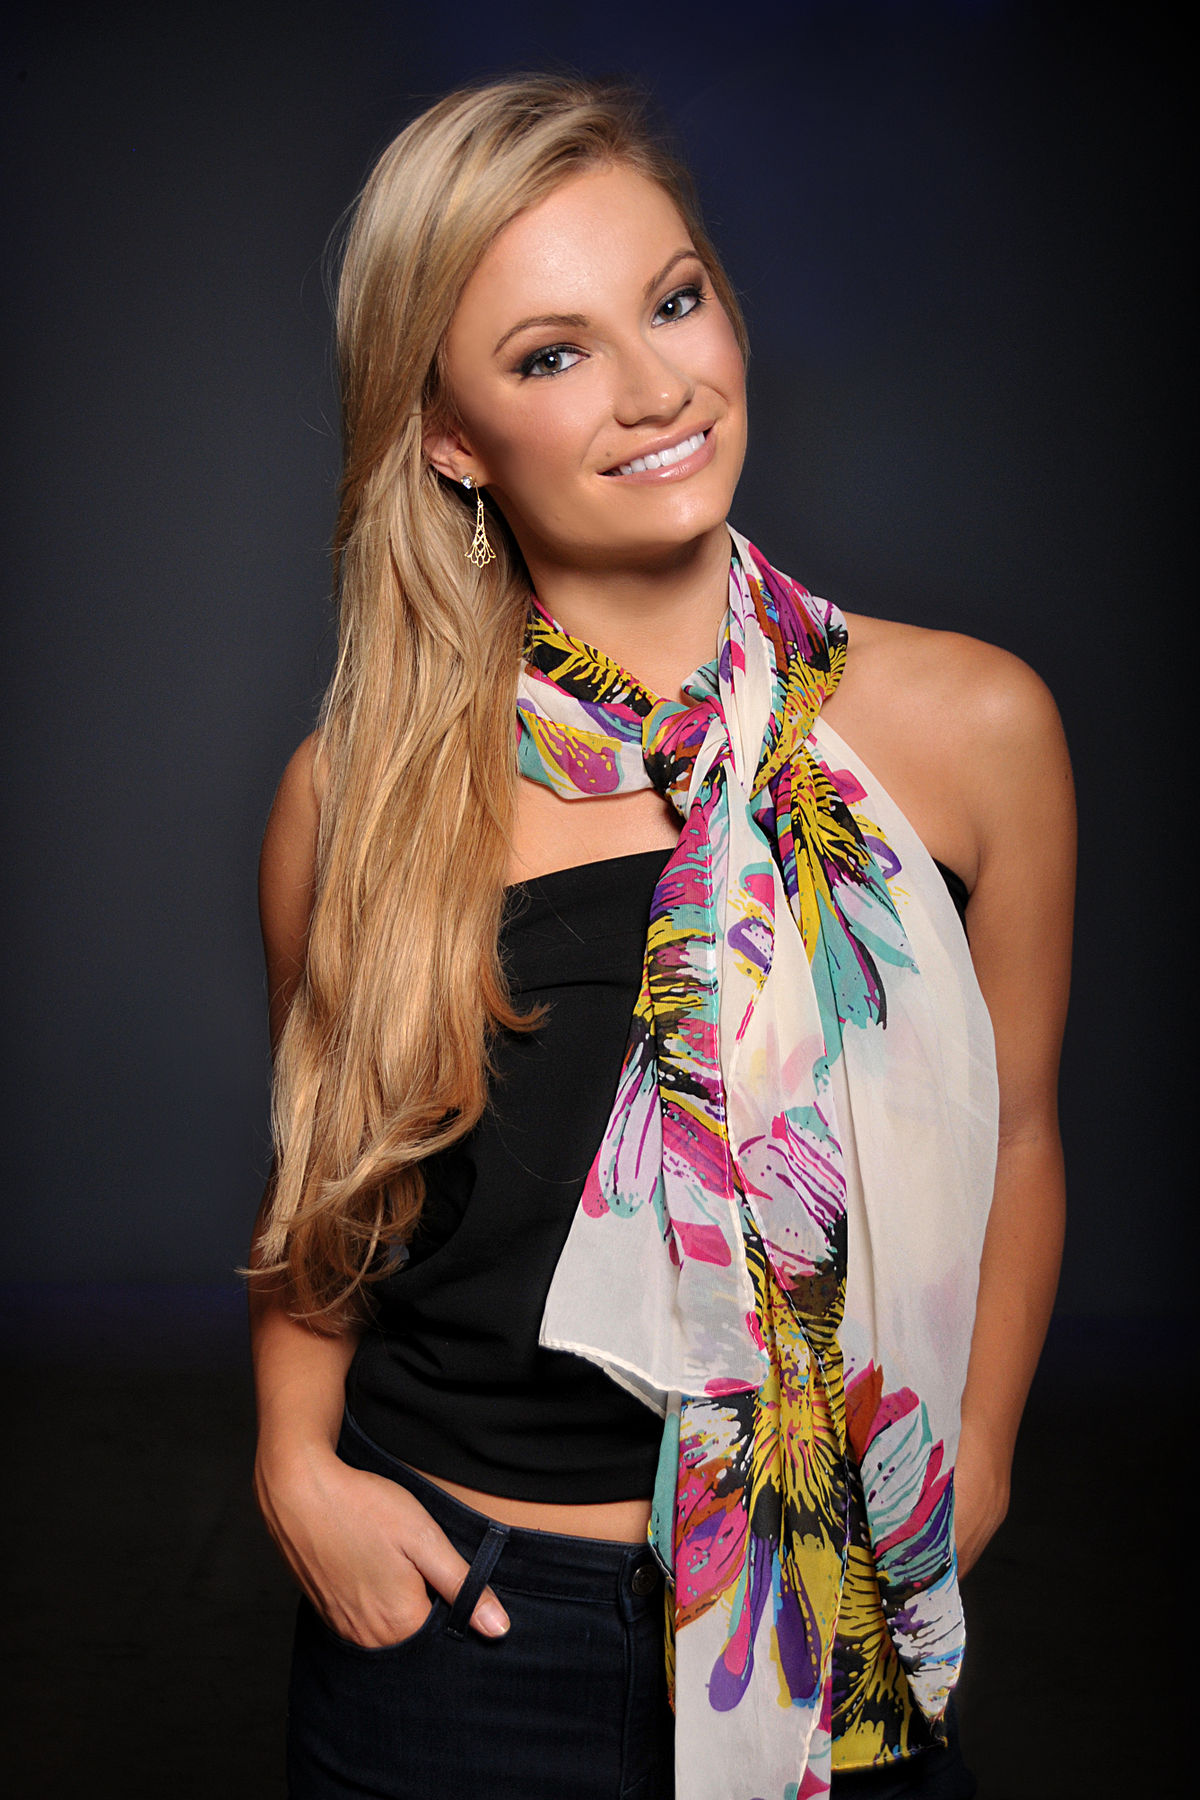 Shop women's scarves, available in cute styles and colors at Red Dress Boutique. Find the trendiest scarf to complete your outfit! Order now for fast shipping! Shop women's scarves, available in cute styles and colors at Red Dress Boutique. Find the trendiest scarf to complete your outfit!